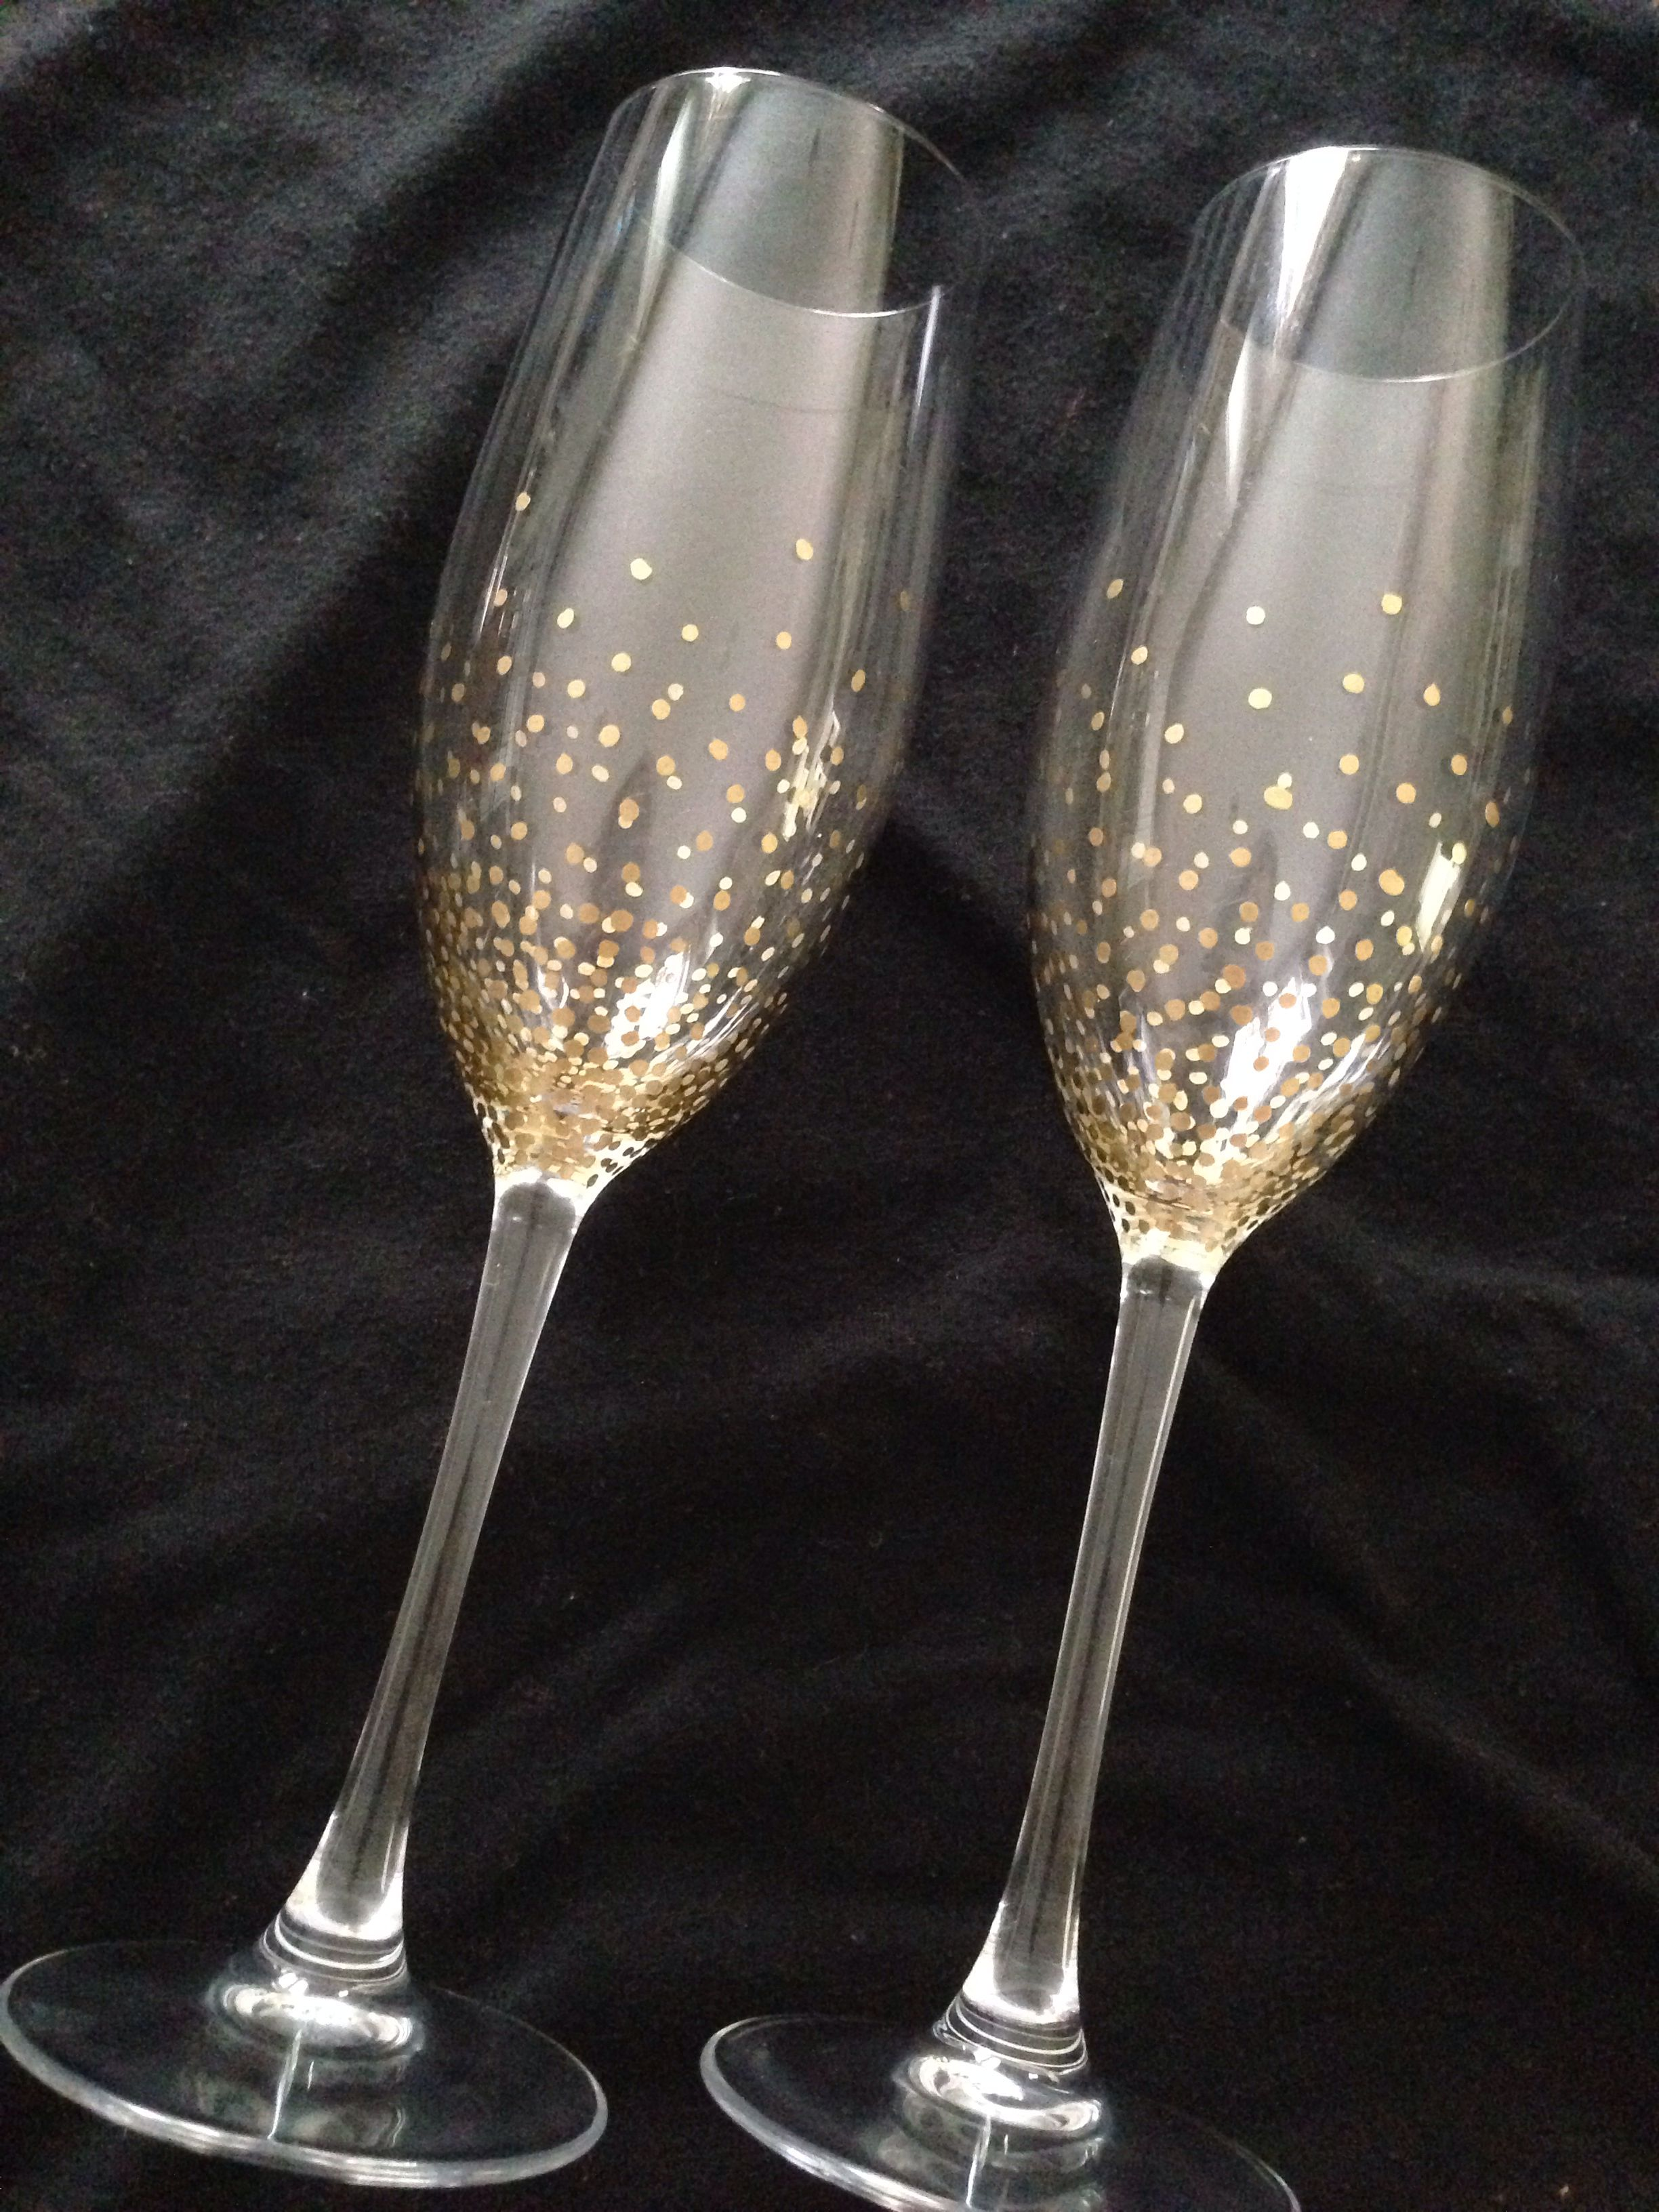 Pin By Kassie Peterson On Crafts Hand Painted Champagne Glasses Painted Wine Glasses Wedding Wine Glasses